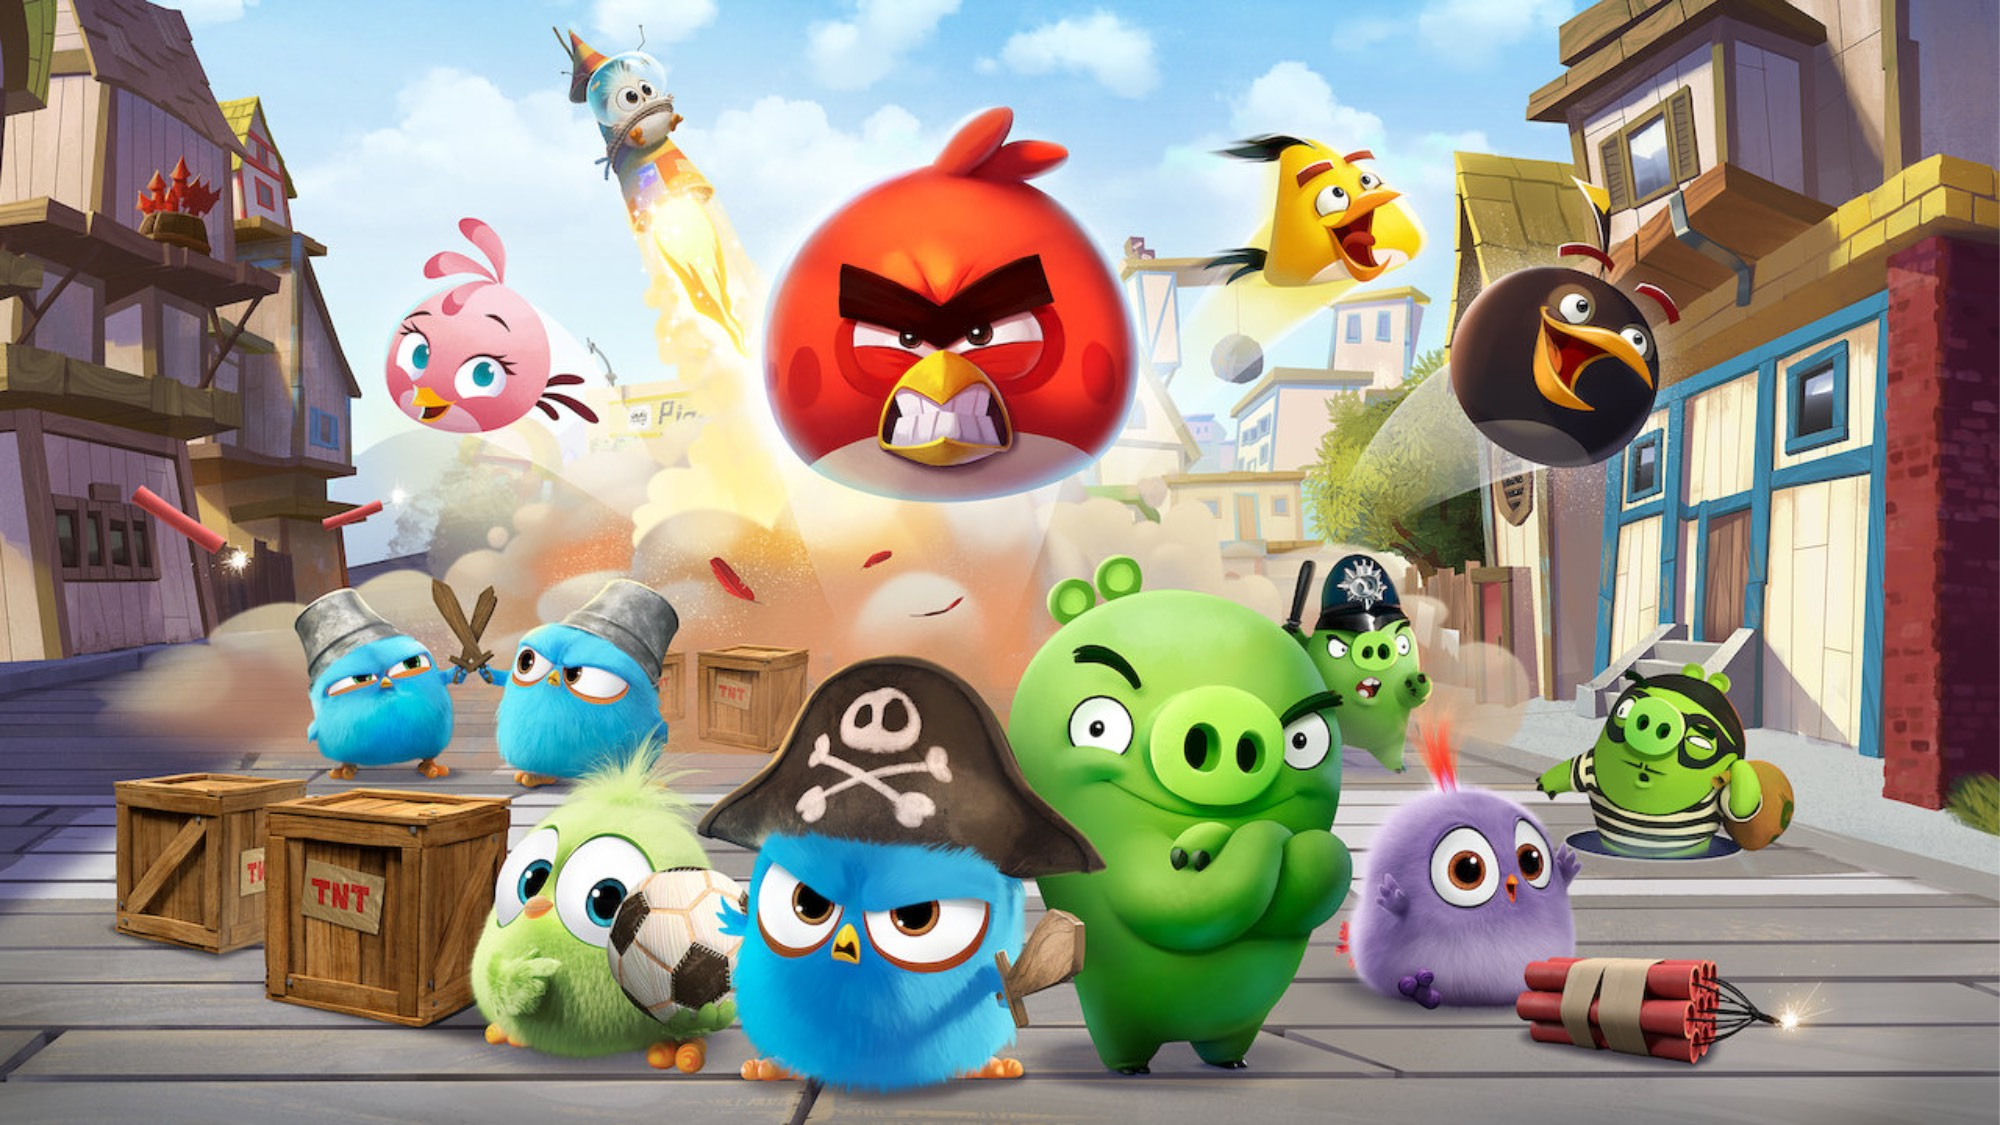 An illustration of the Angry Birds